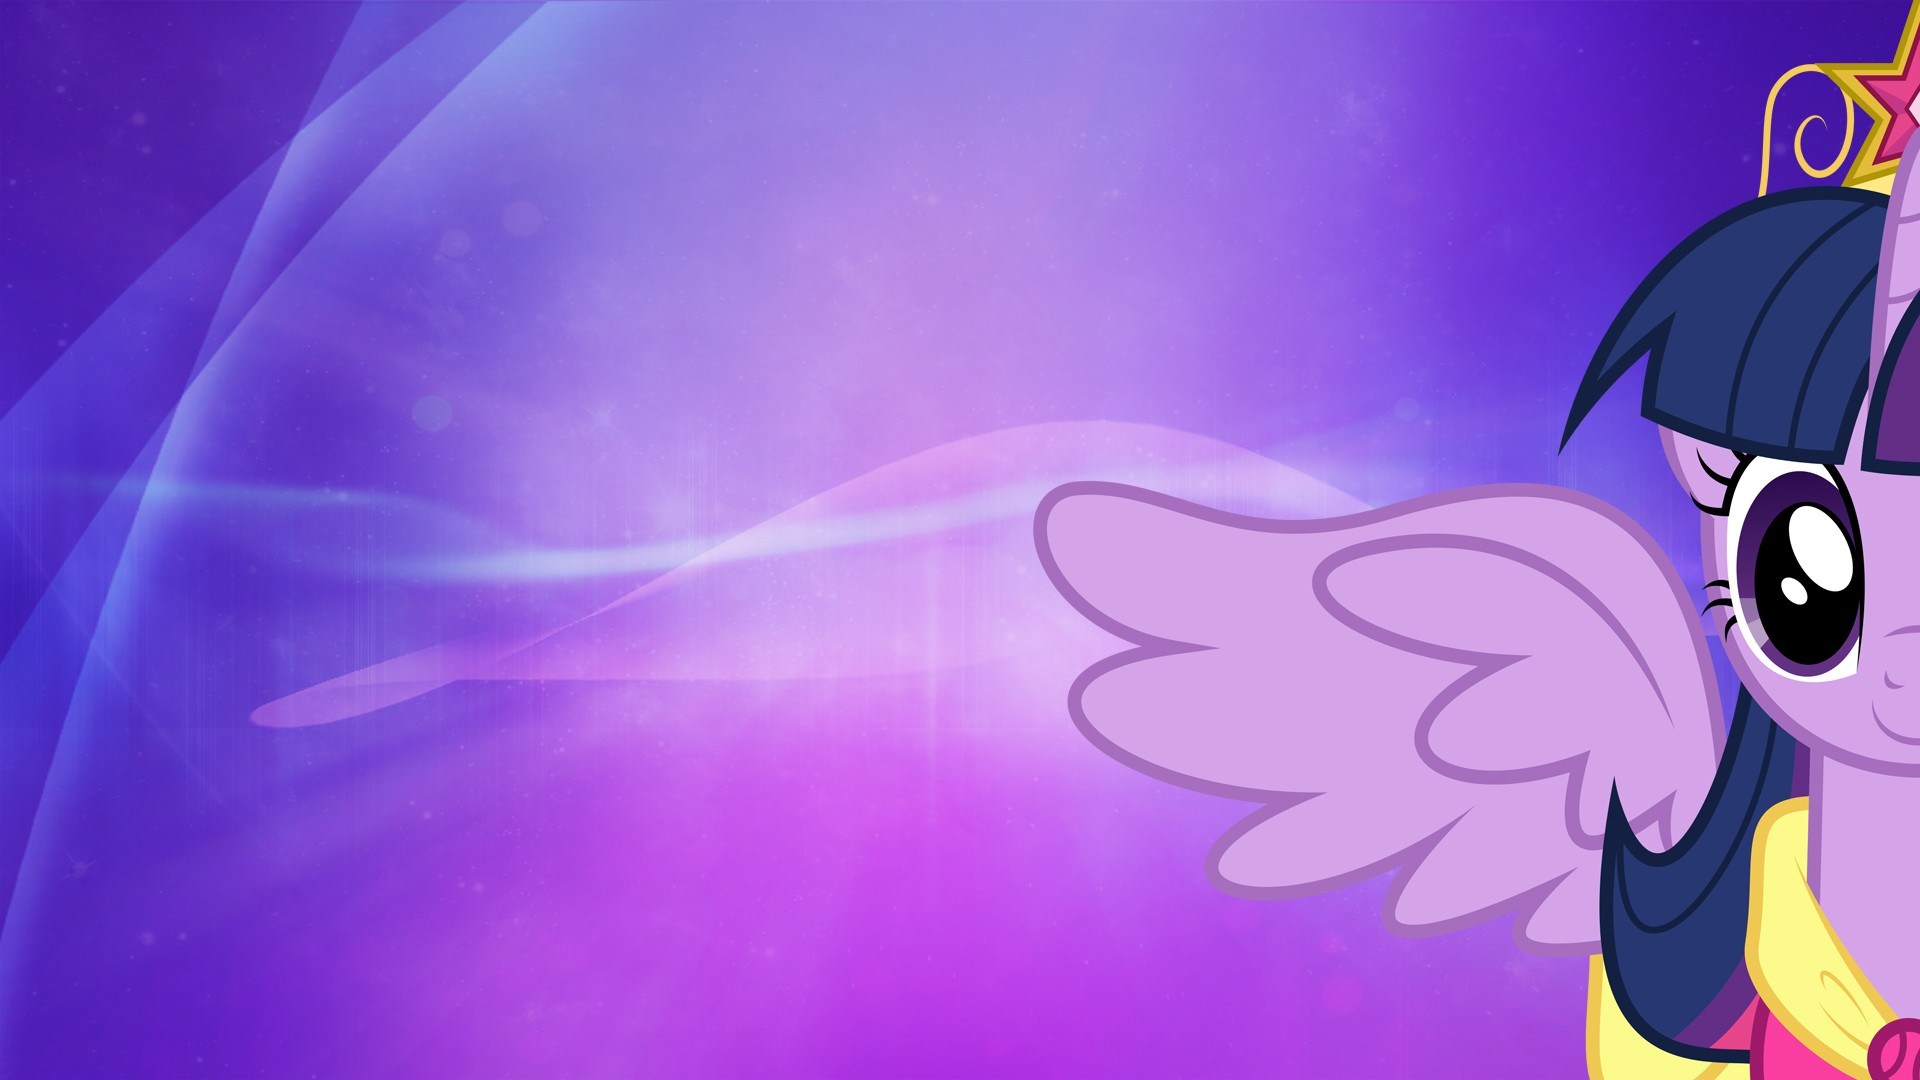 Magic My Little Pony Ponies Twilight Sparkle Cutie Mark My Little